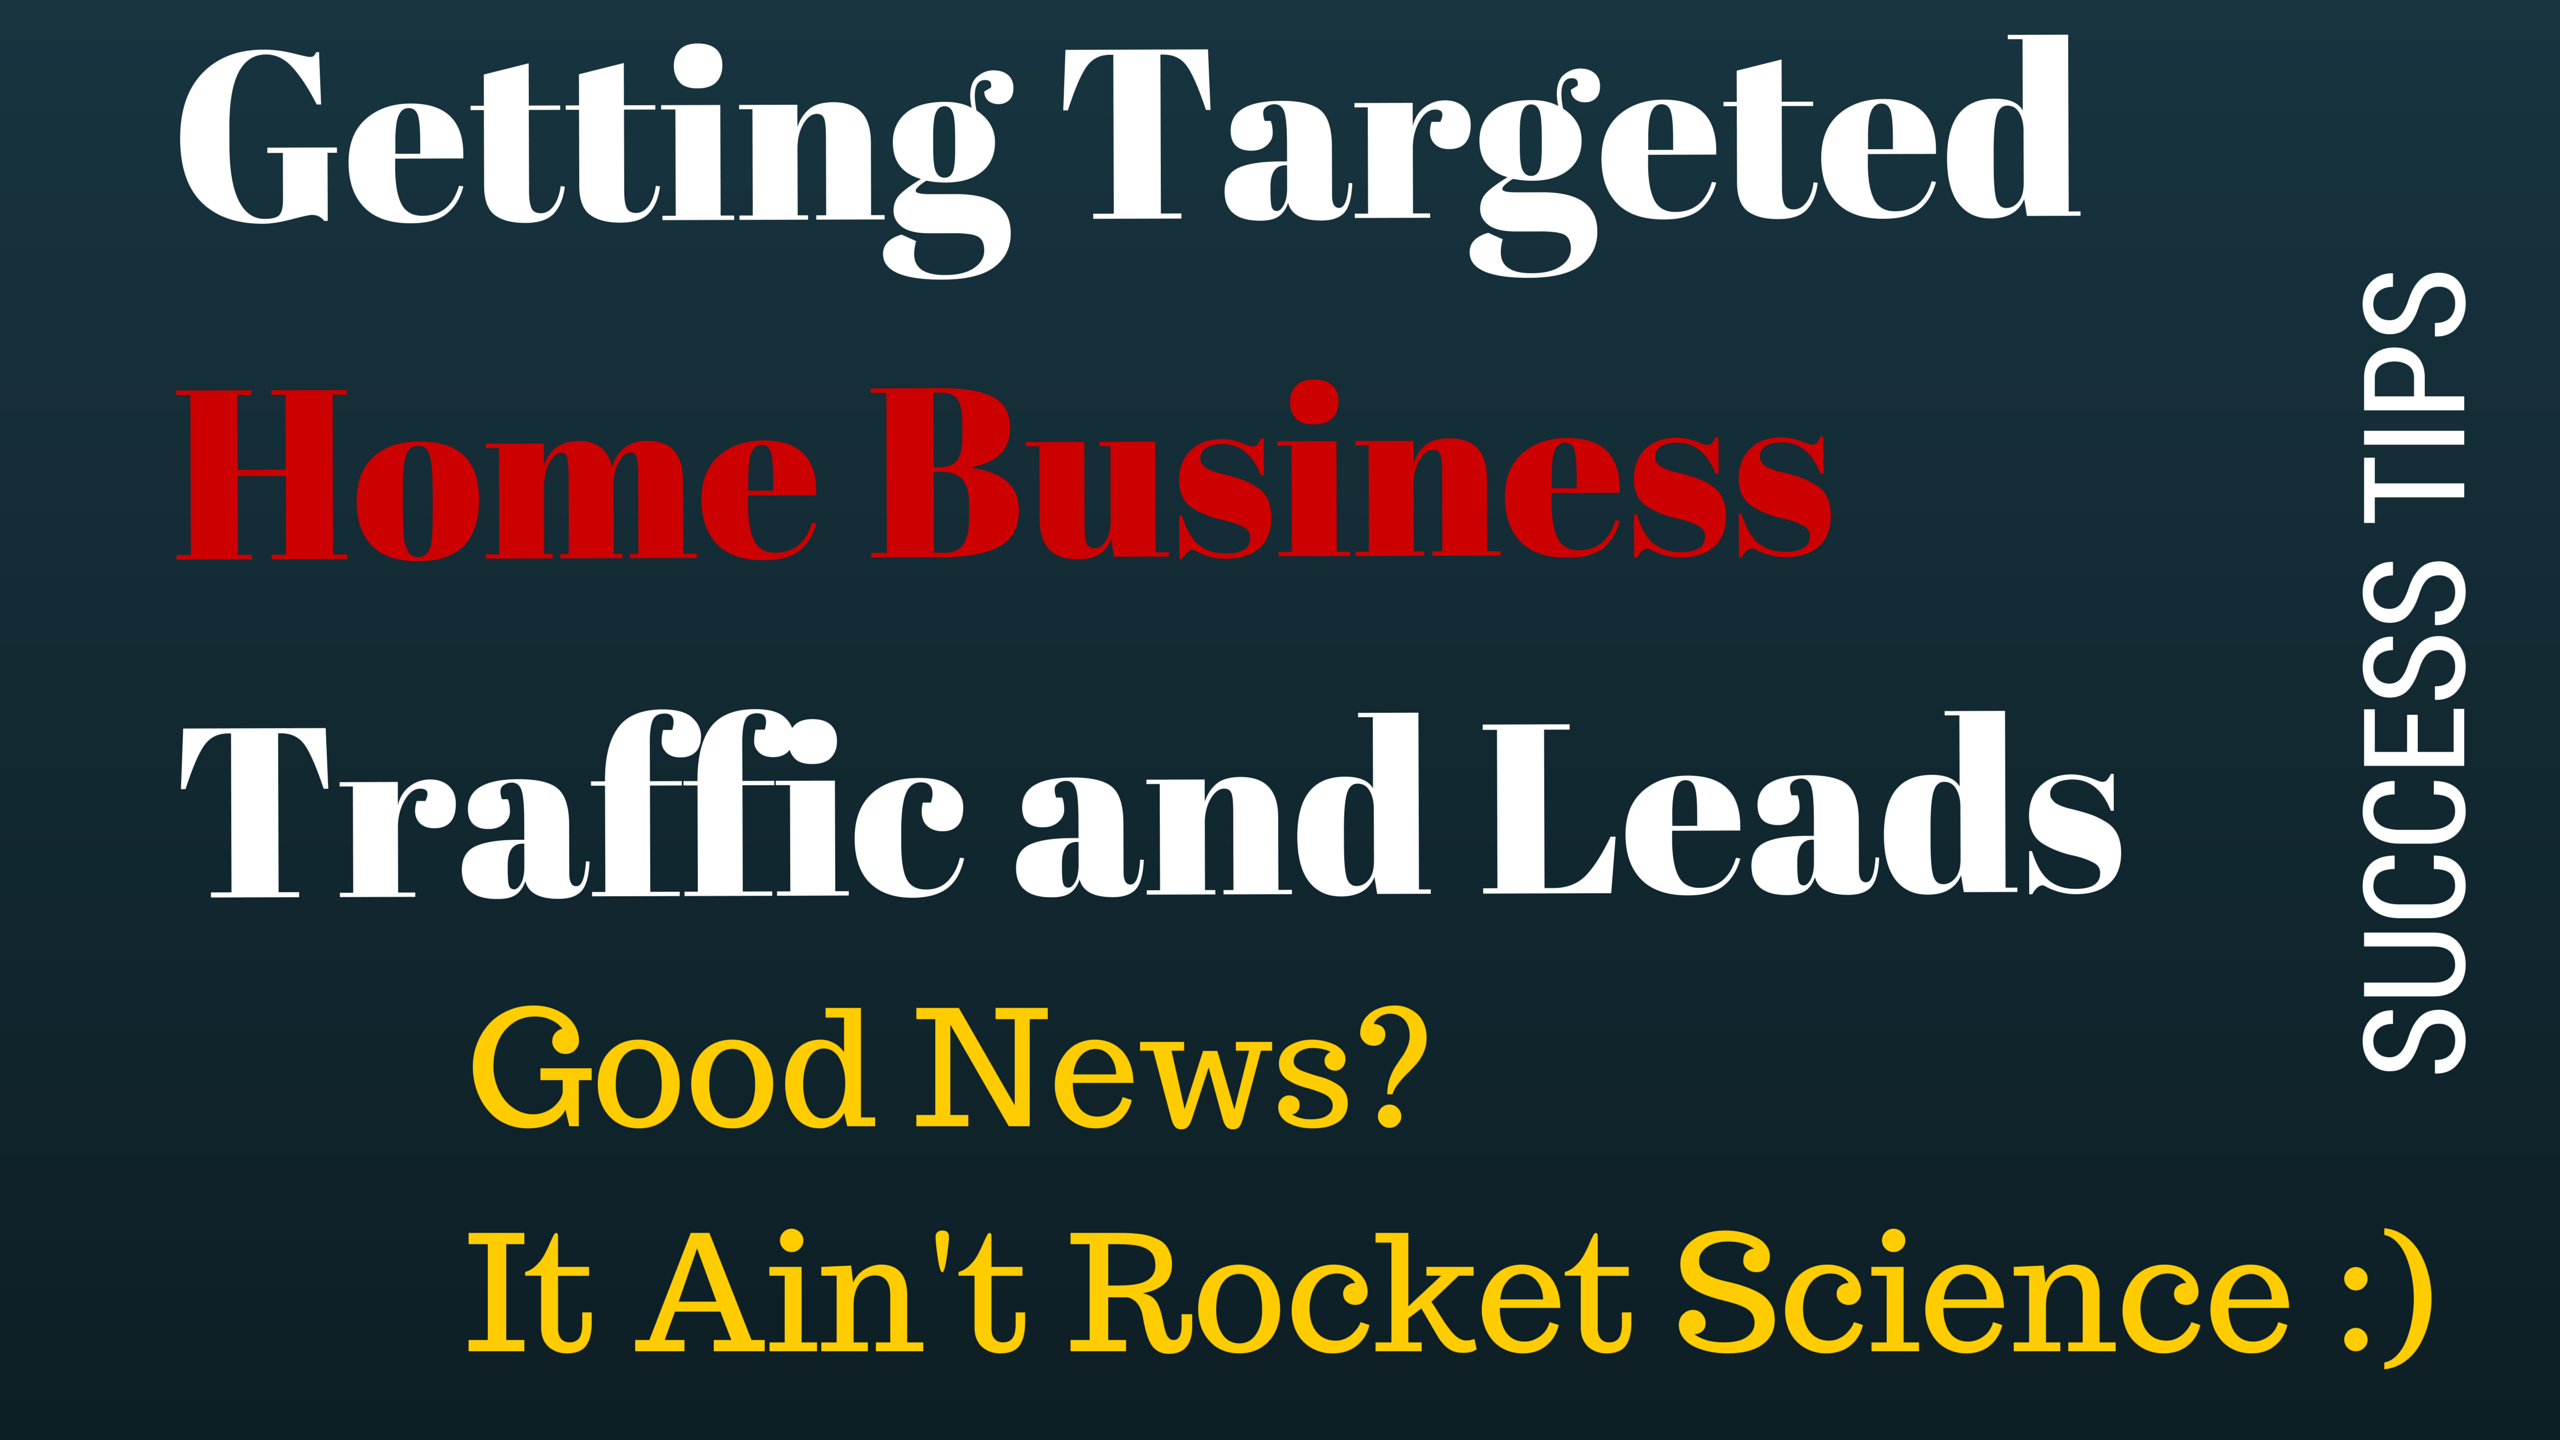 How To Get Traffic and Leads